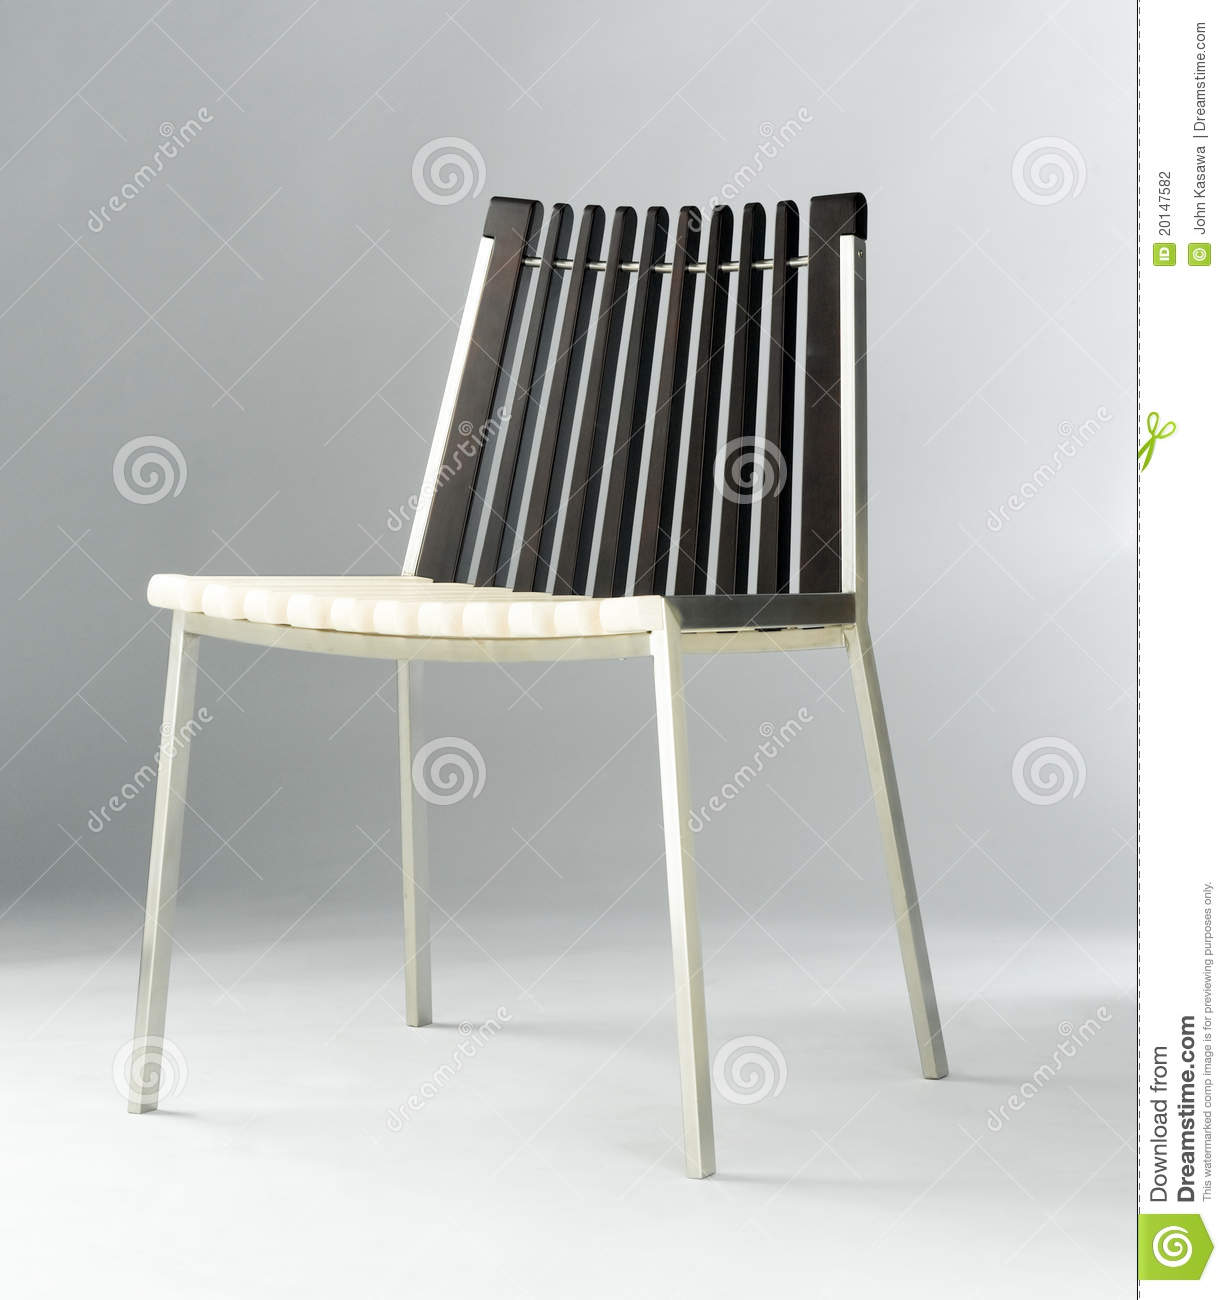 Modern chair design combination of woods and steel stock for Metal design chair